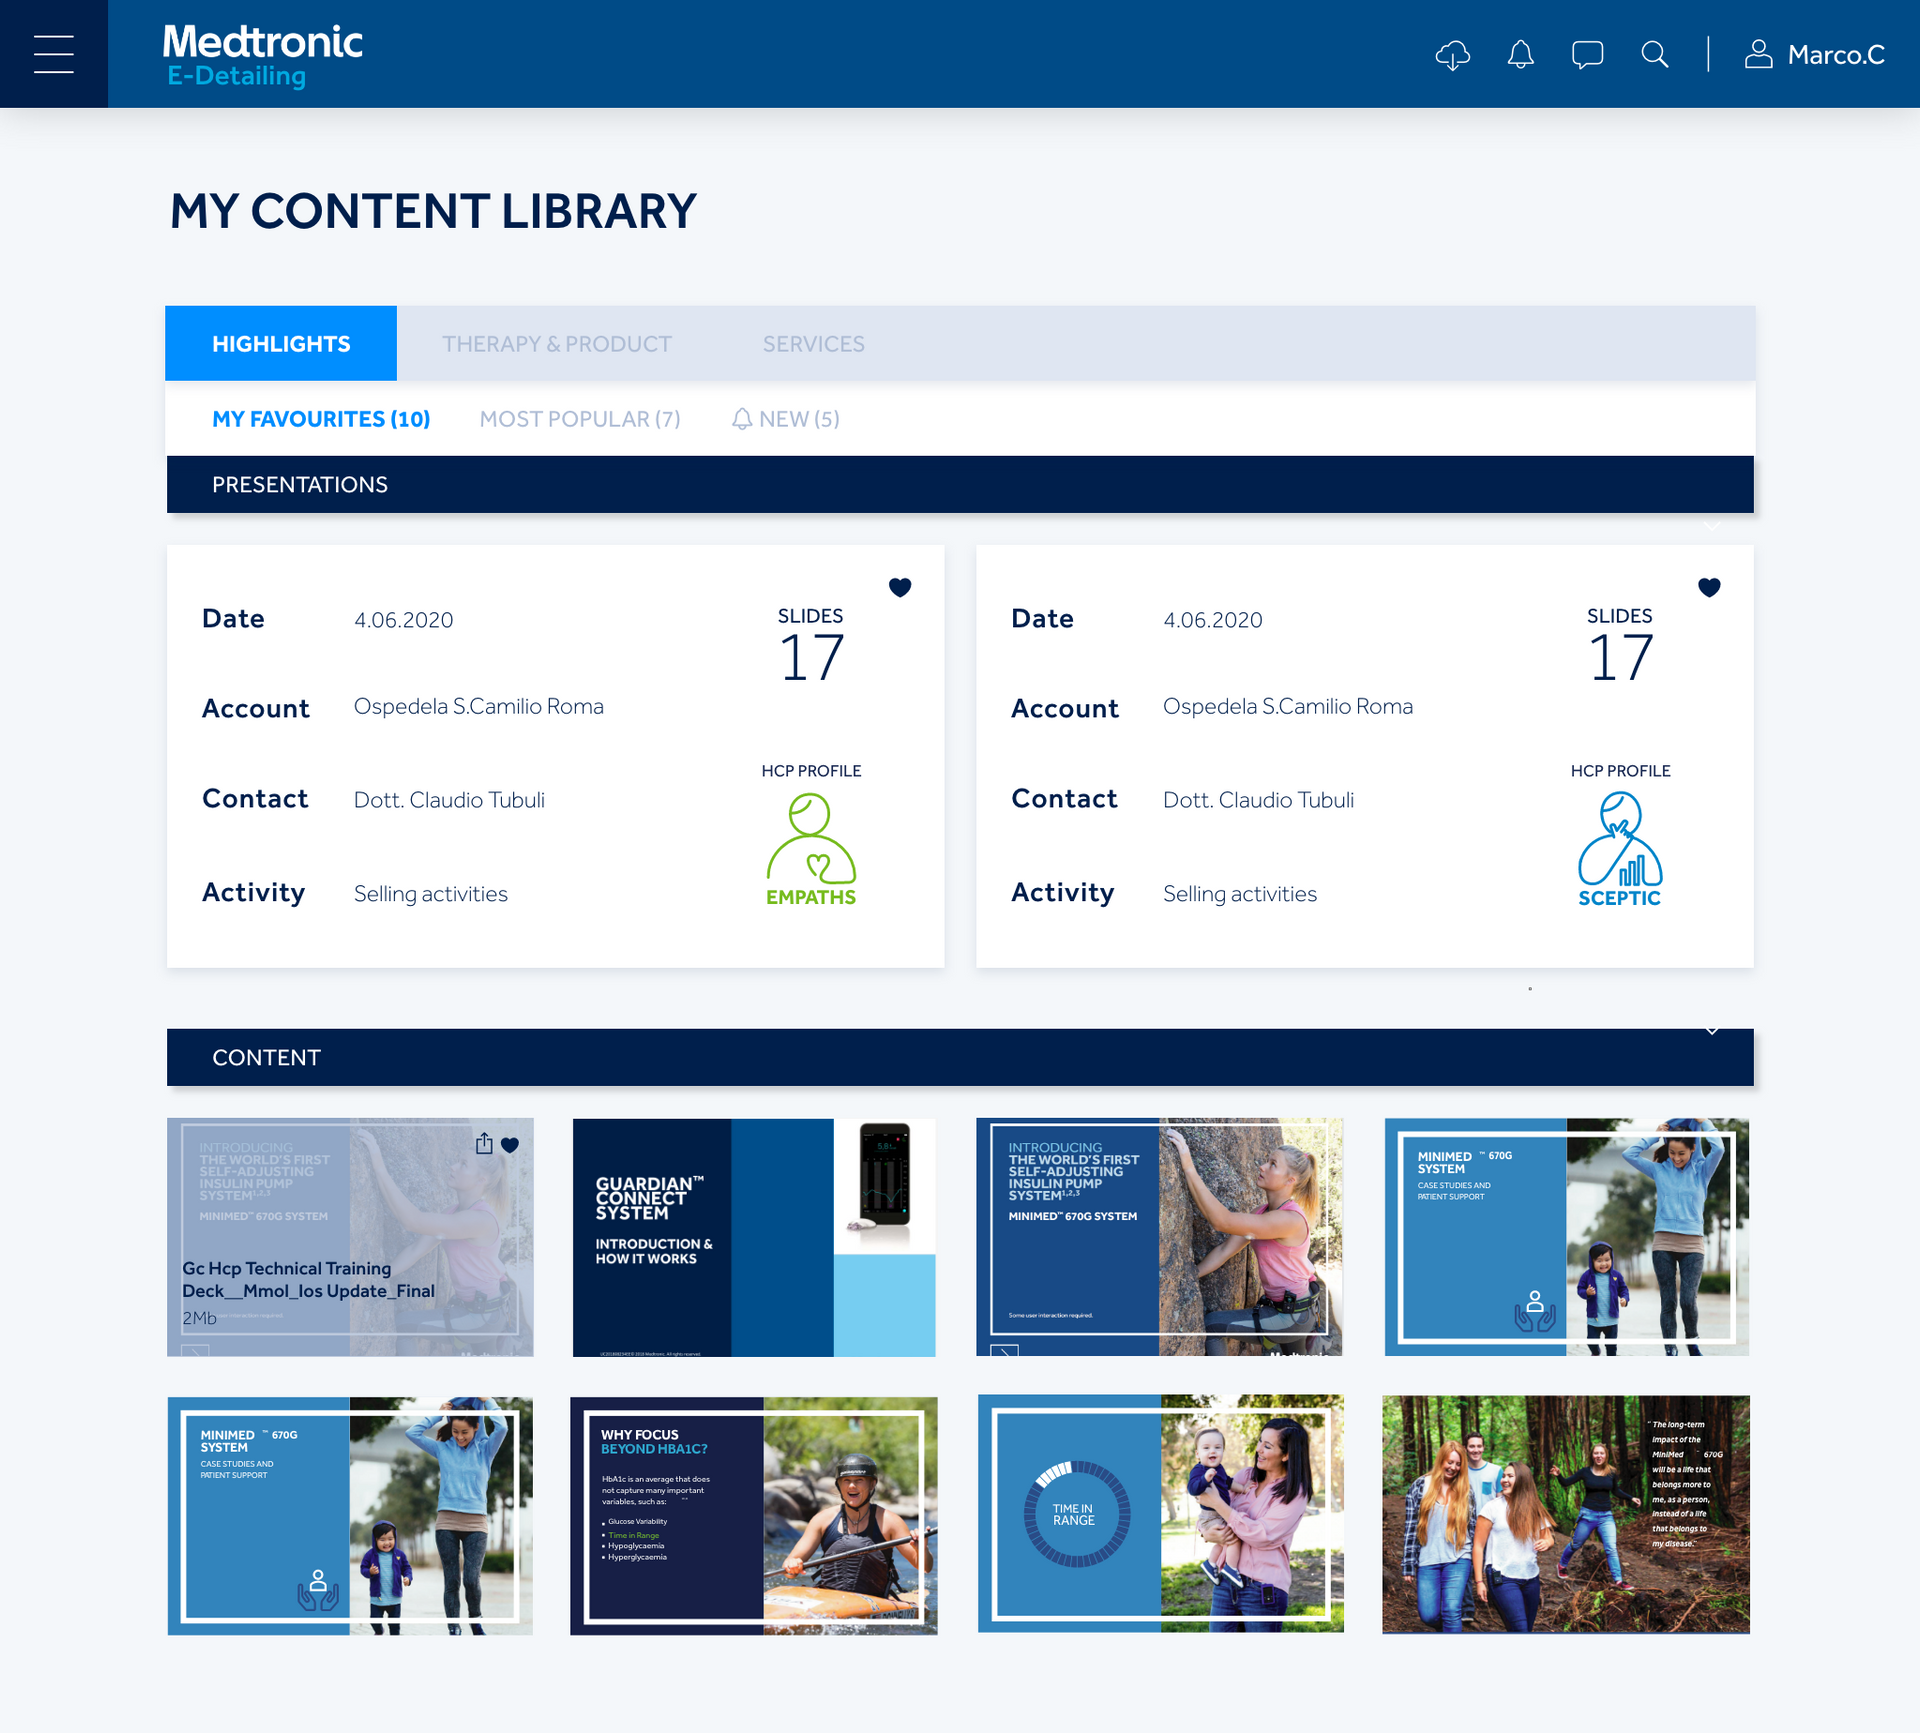 My Content Library